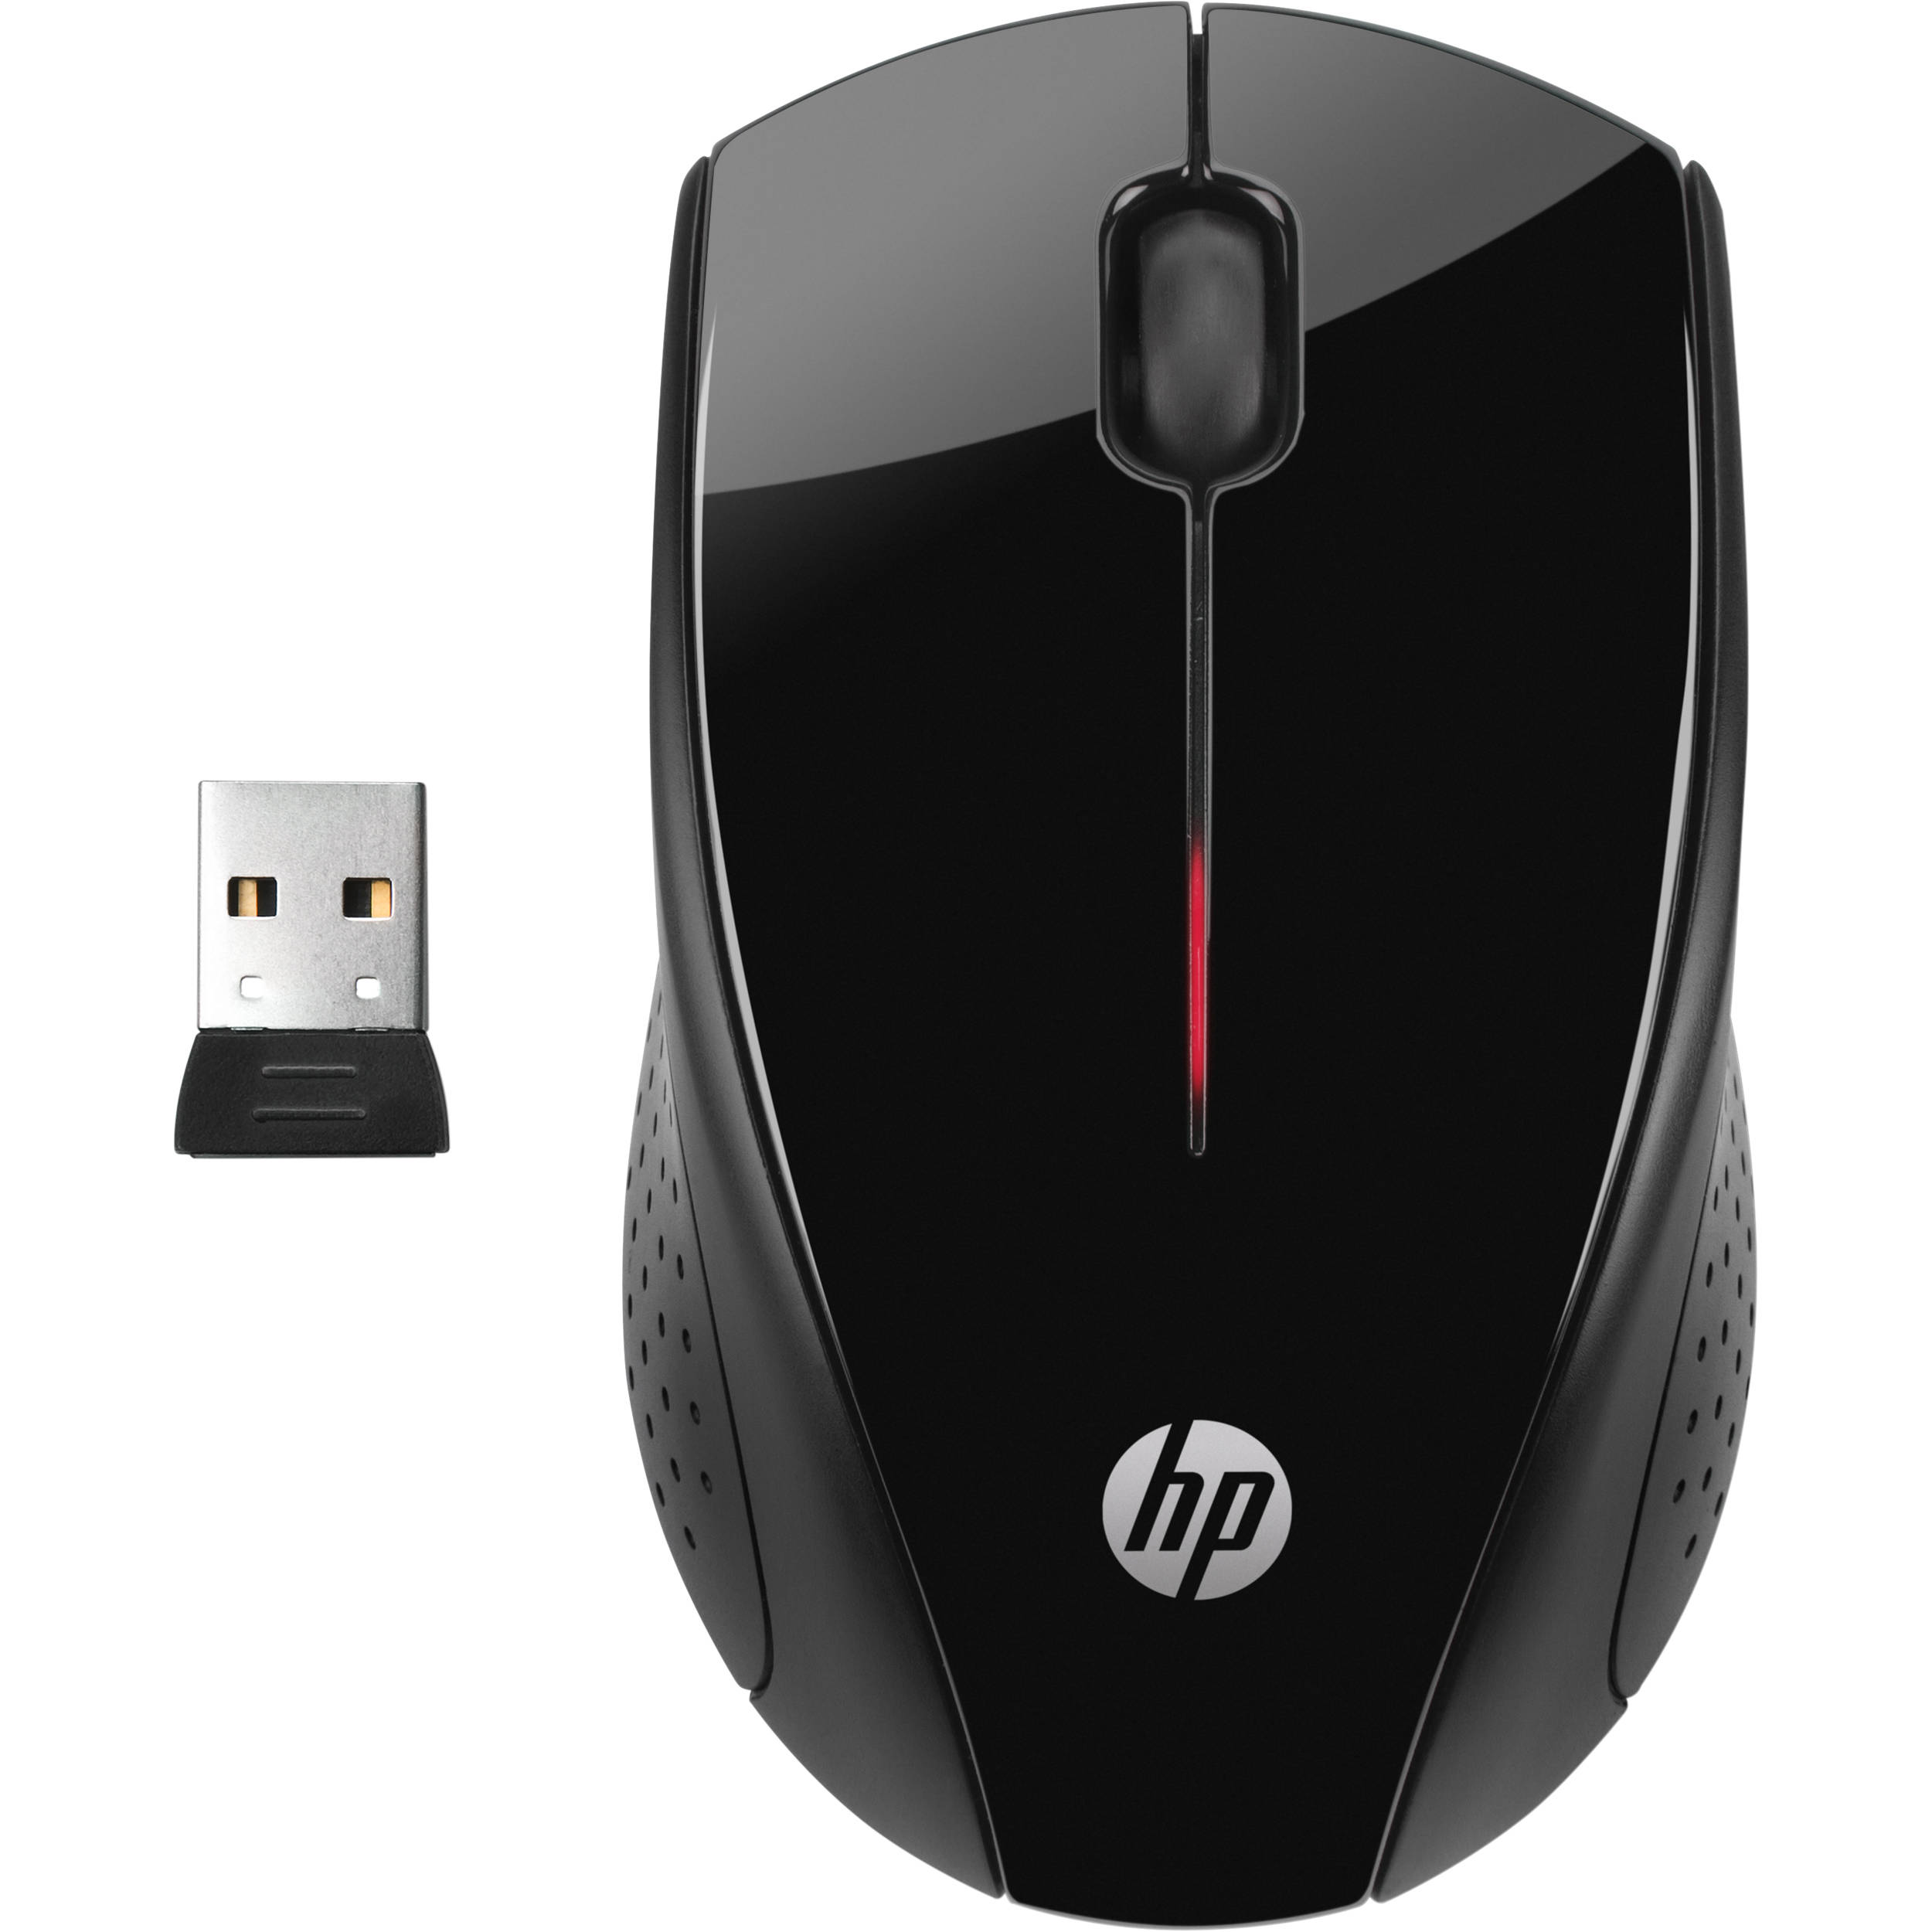 Hp wireless mouse fha-3410